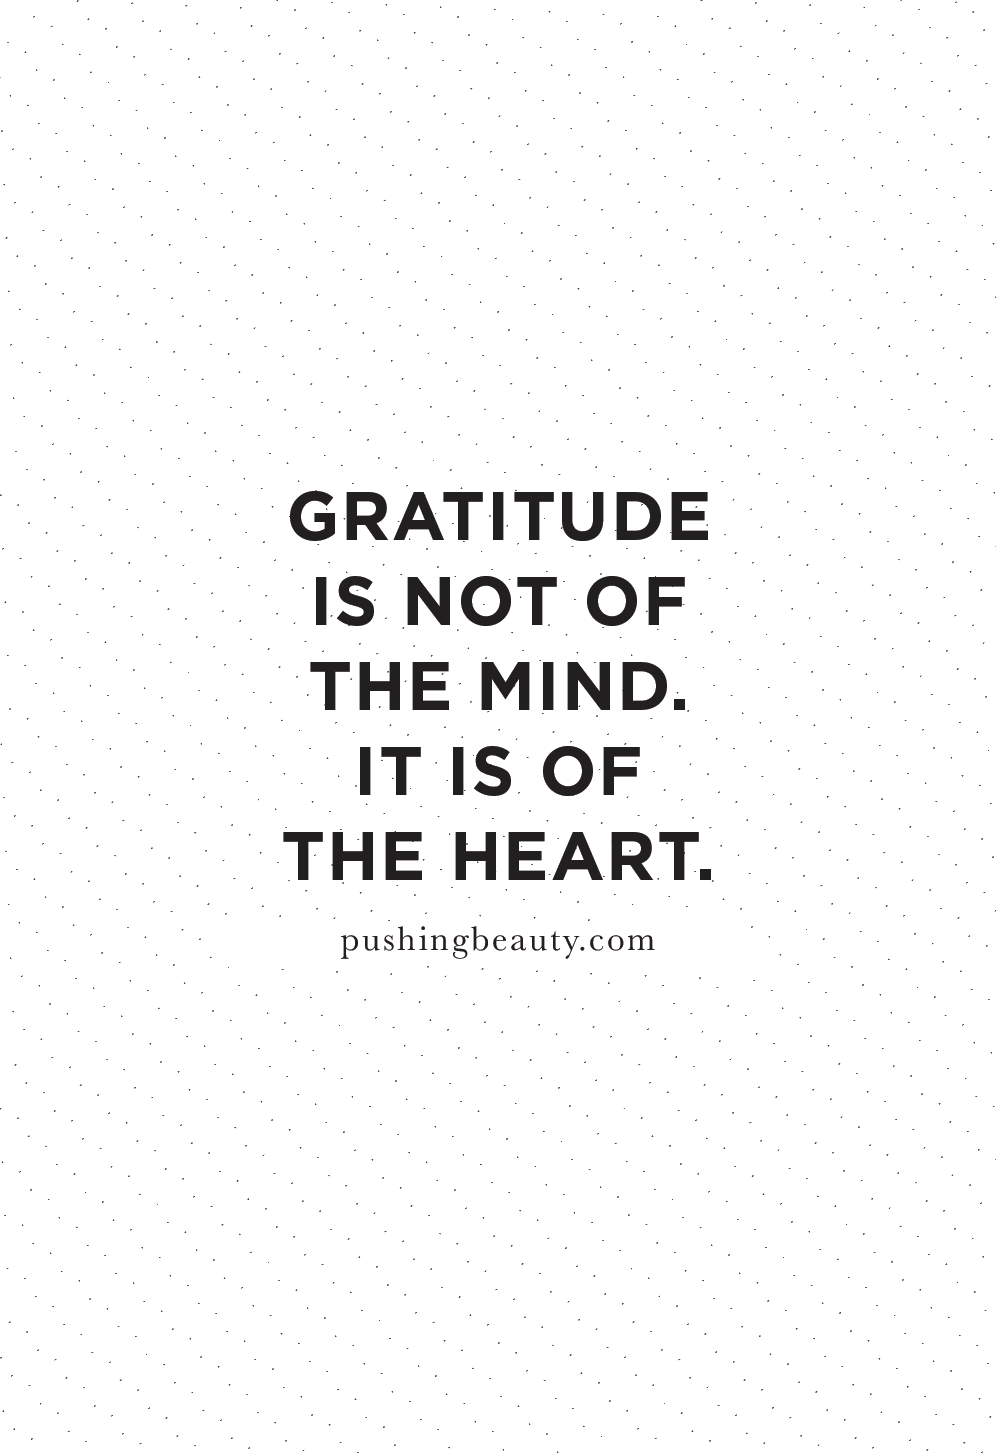 gratitude quotes | pushing beauty